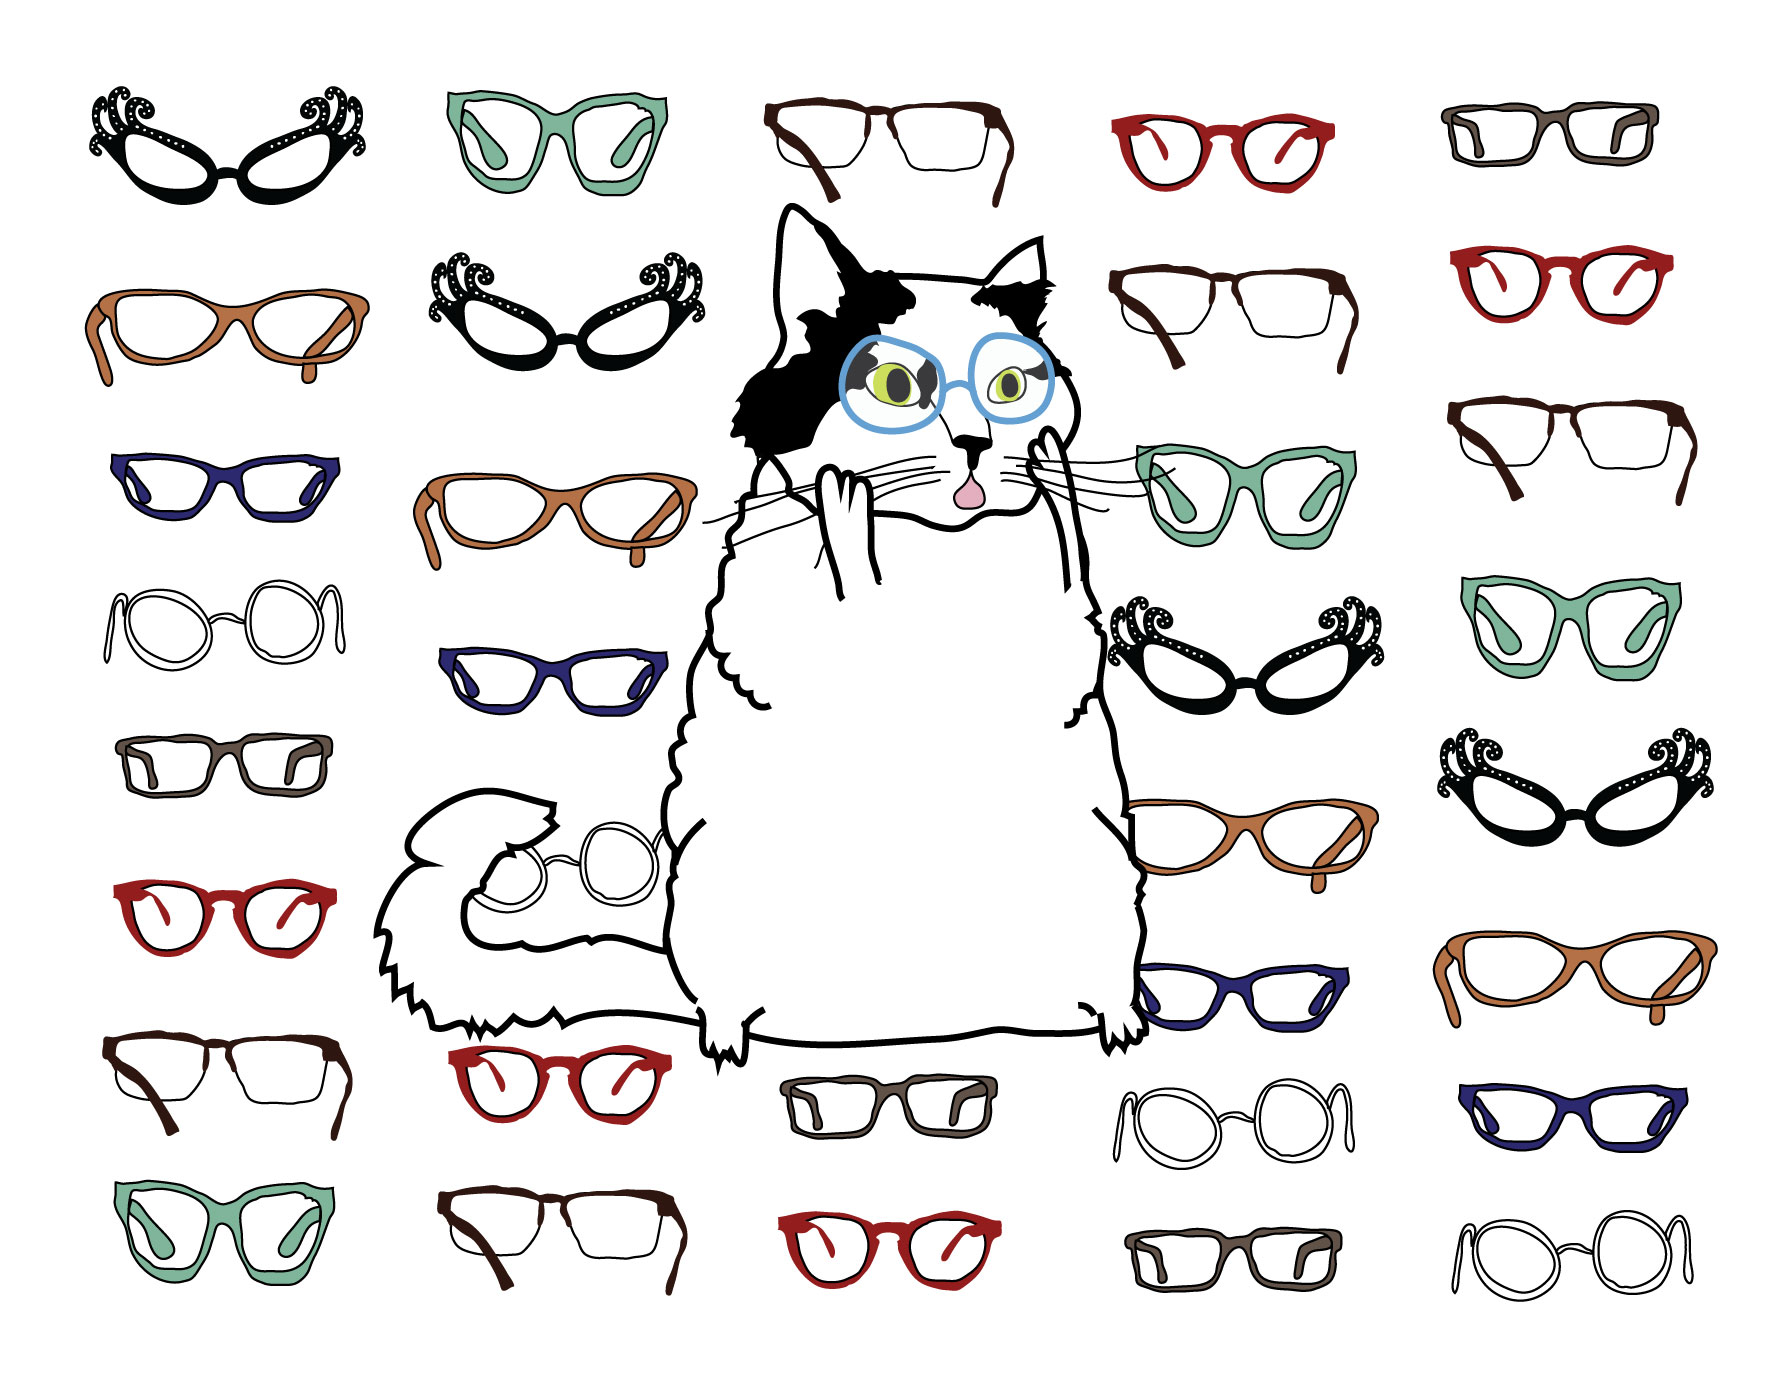 oreo-book-glasses.jpg